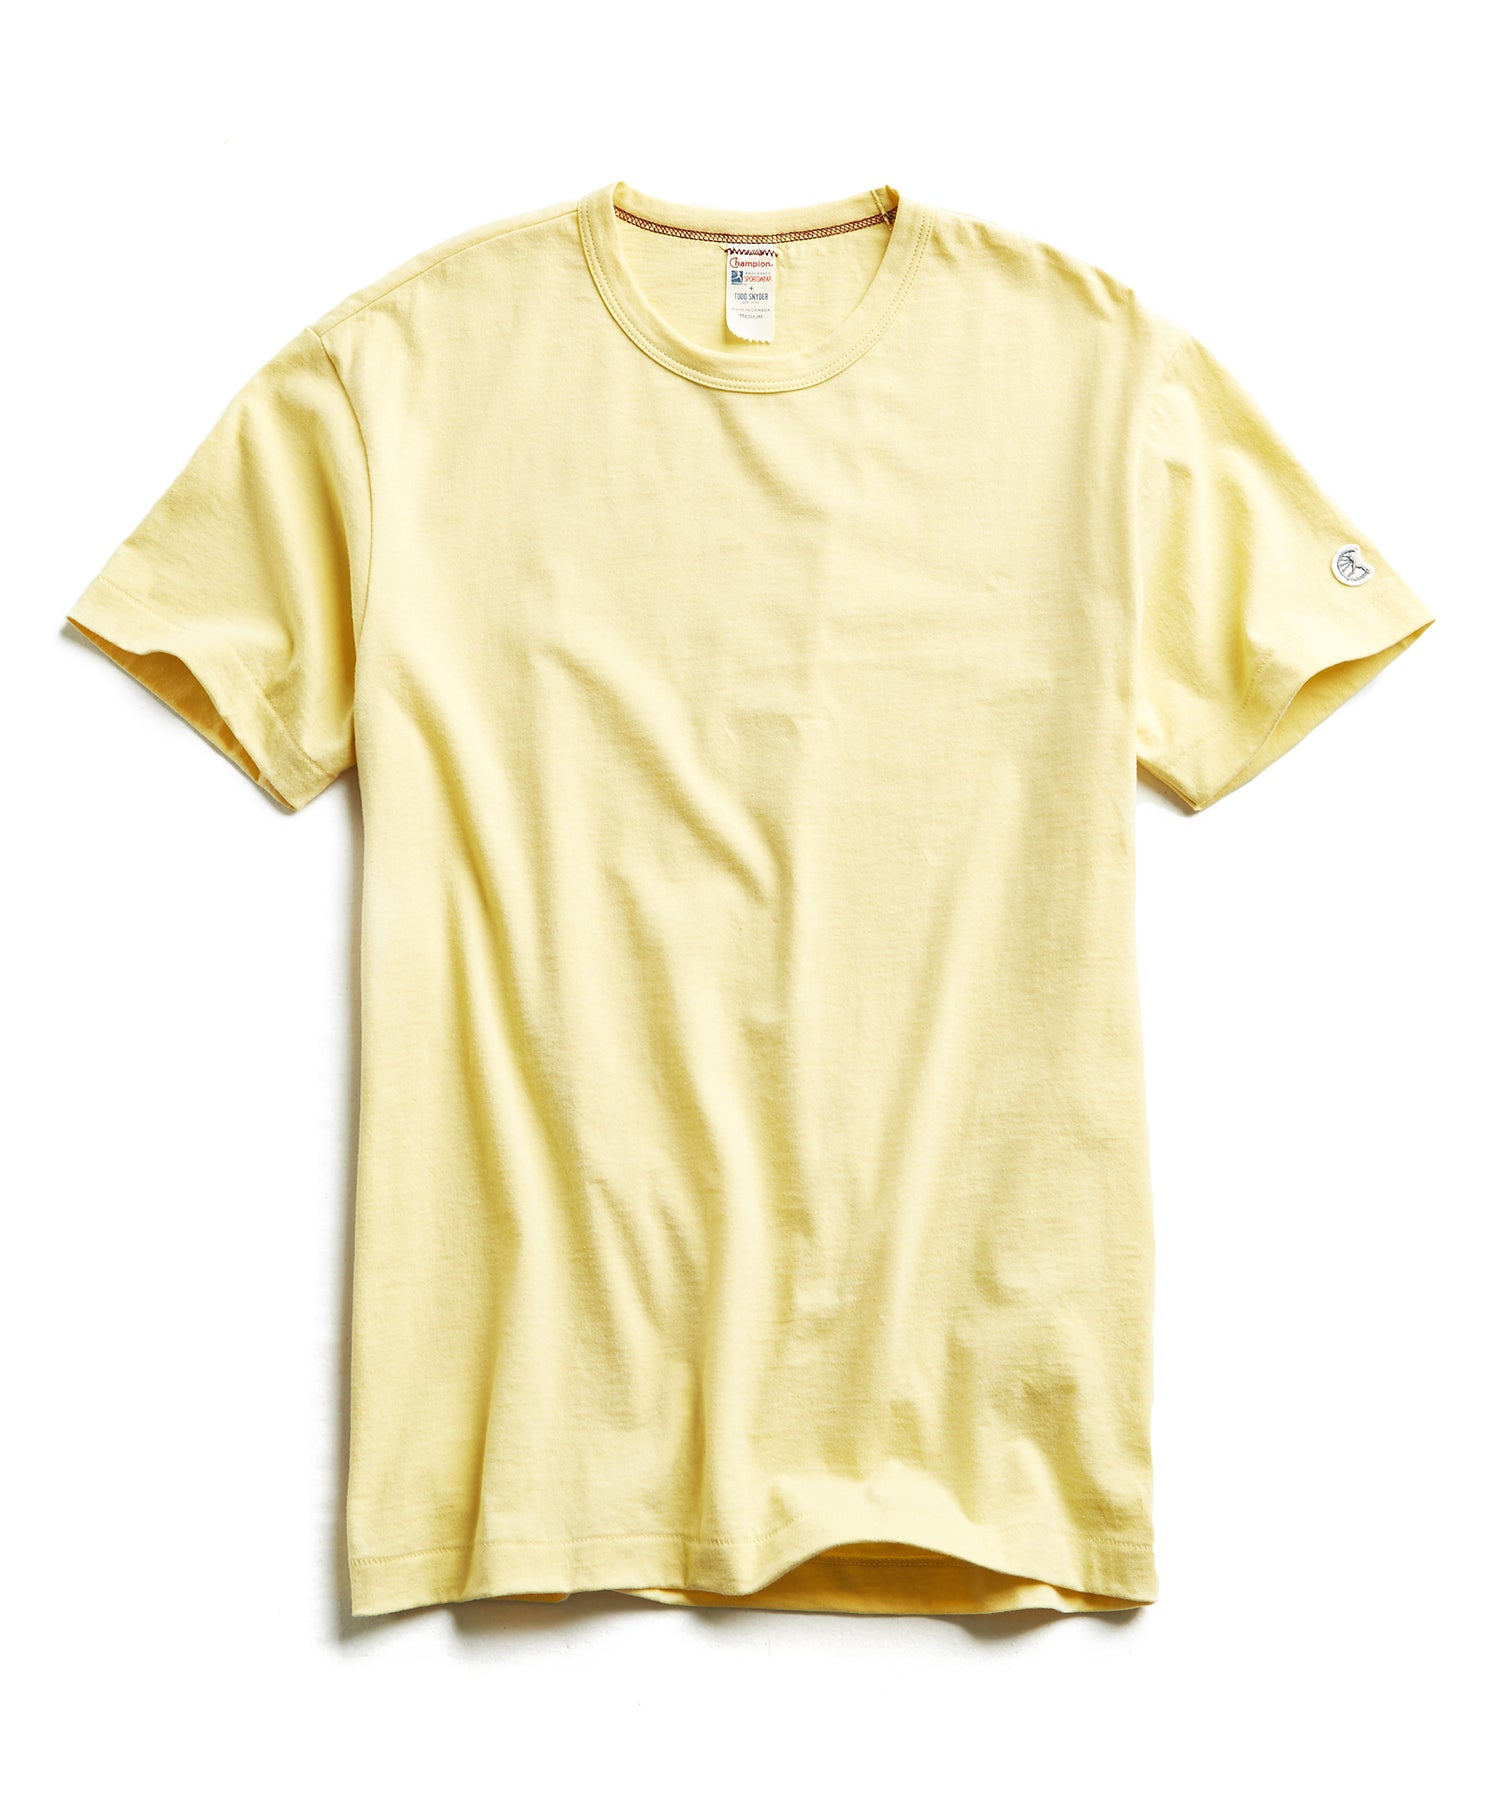 Champion Basic Jersey Tee in Fresh Lemon